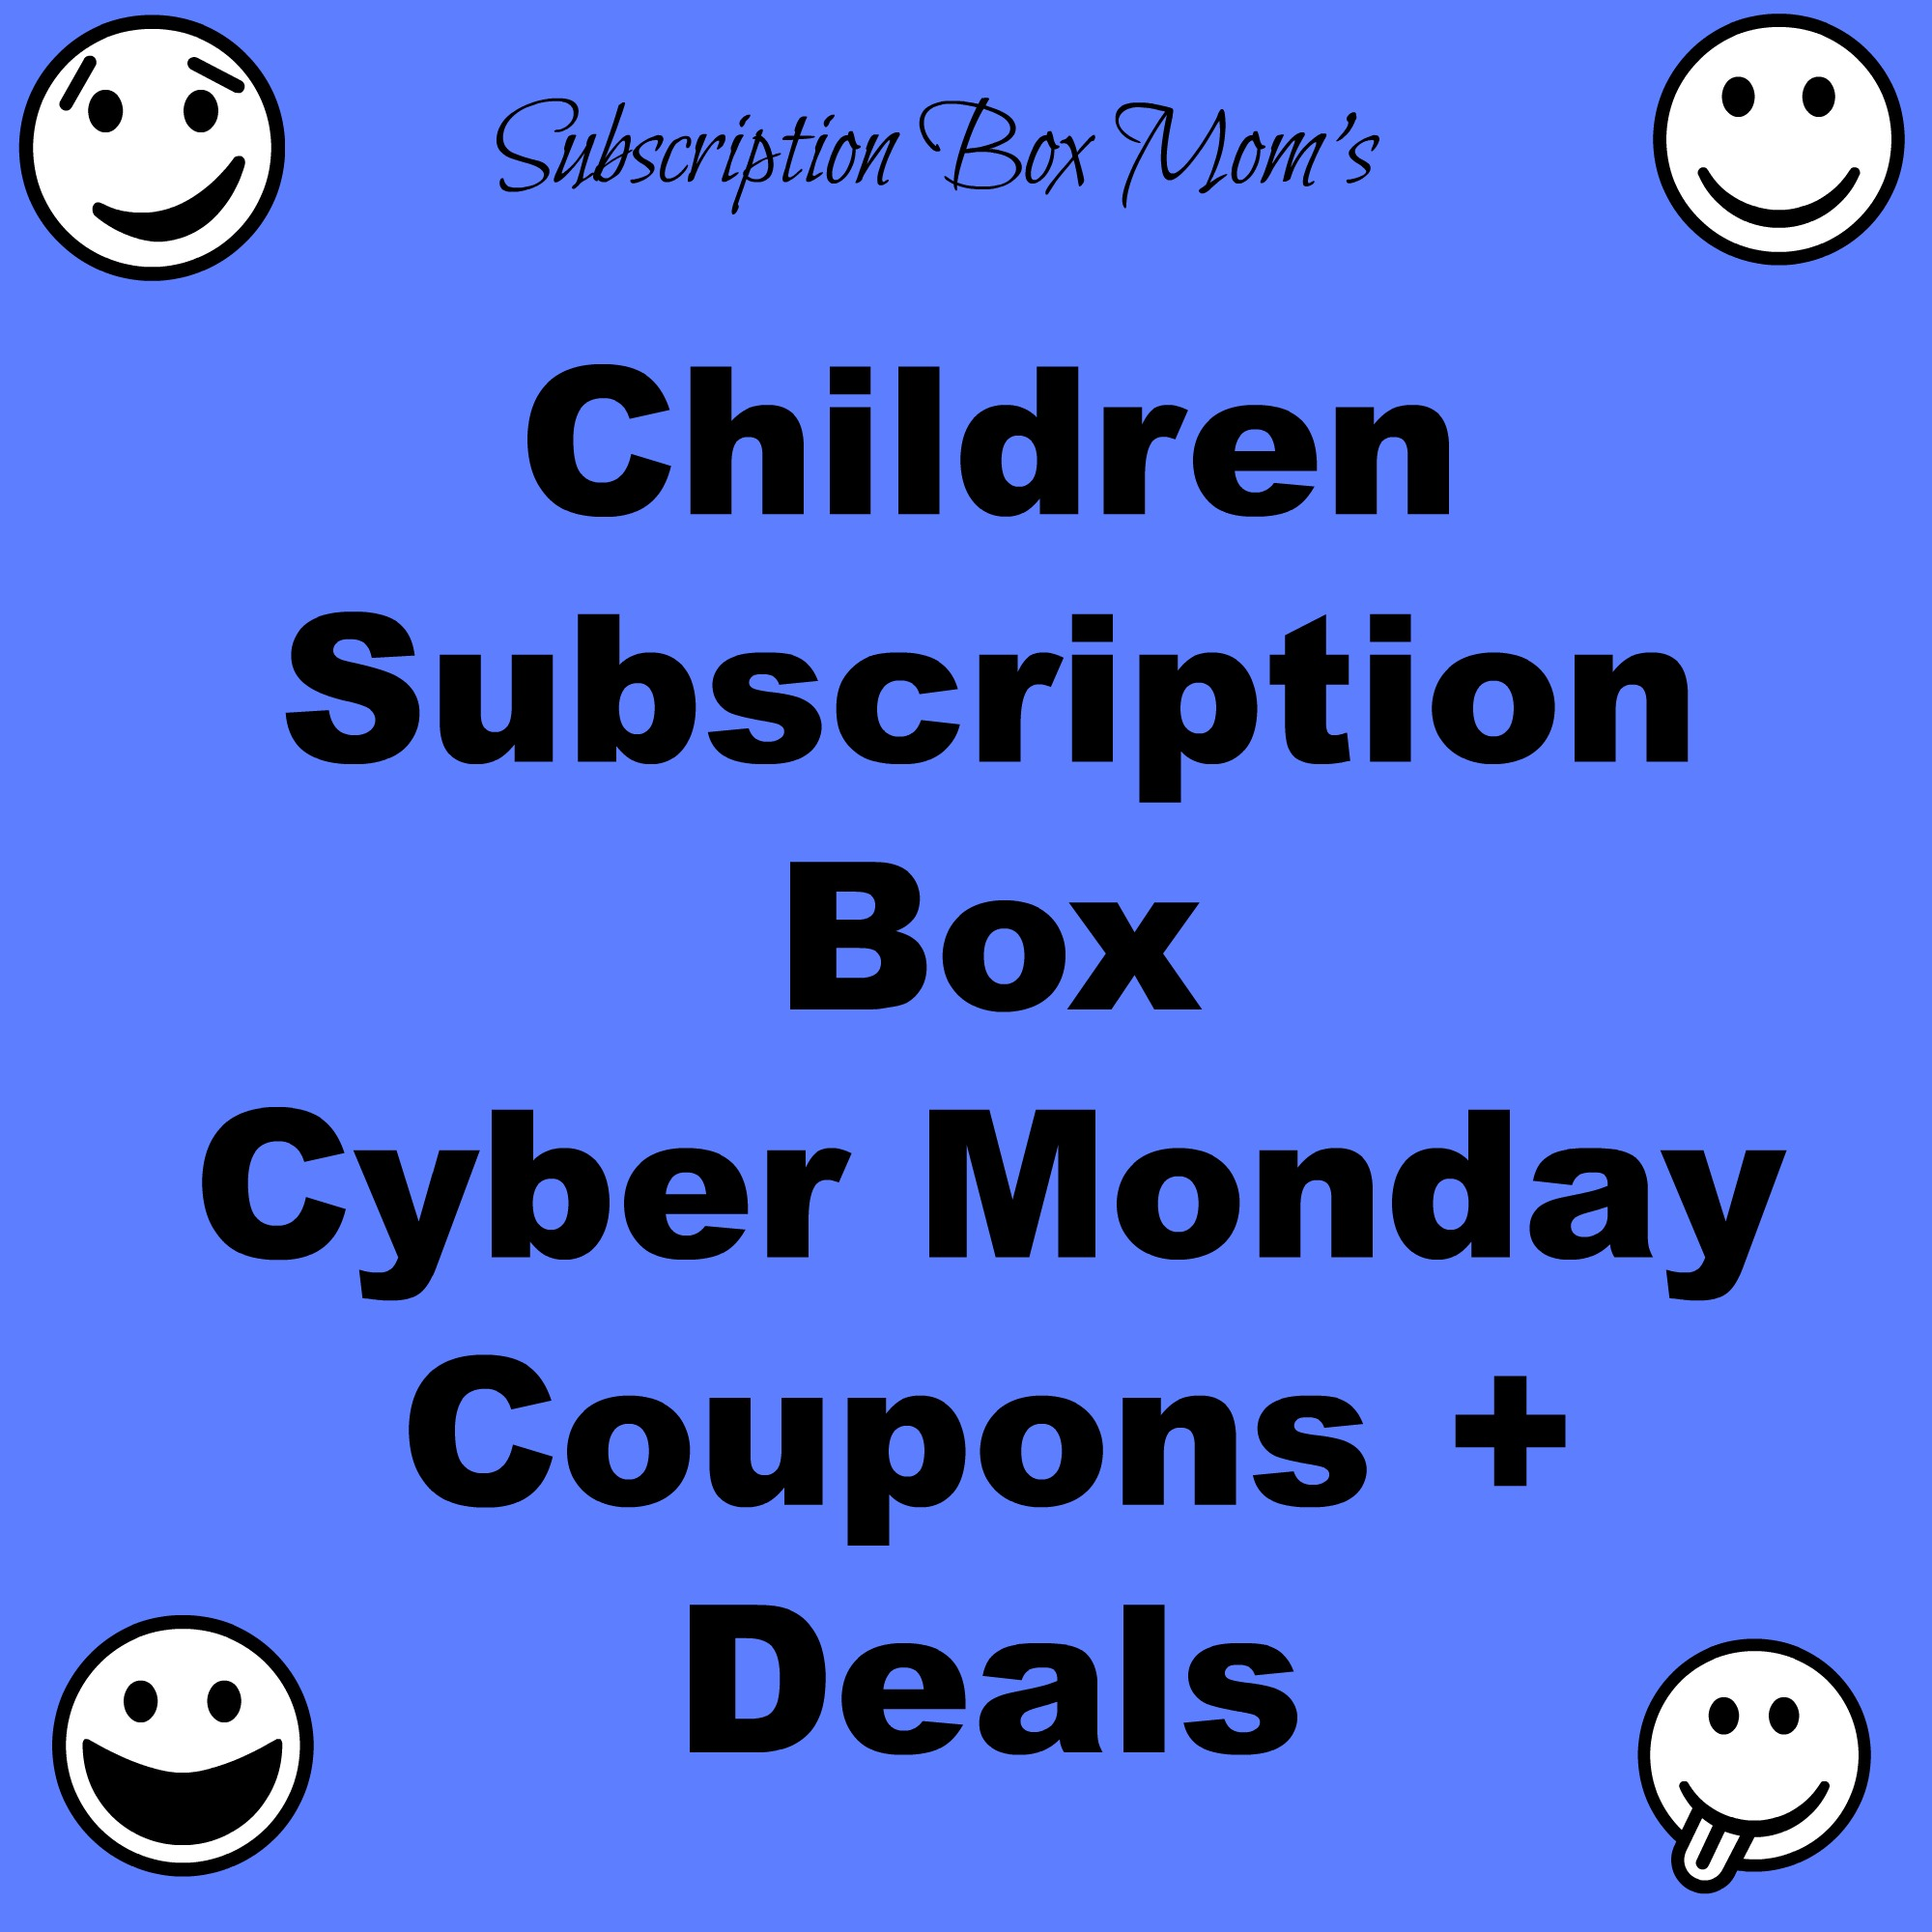 Children Subscription Box Cyber Monday Coupons + Deals 2014